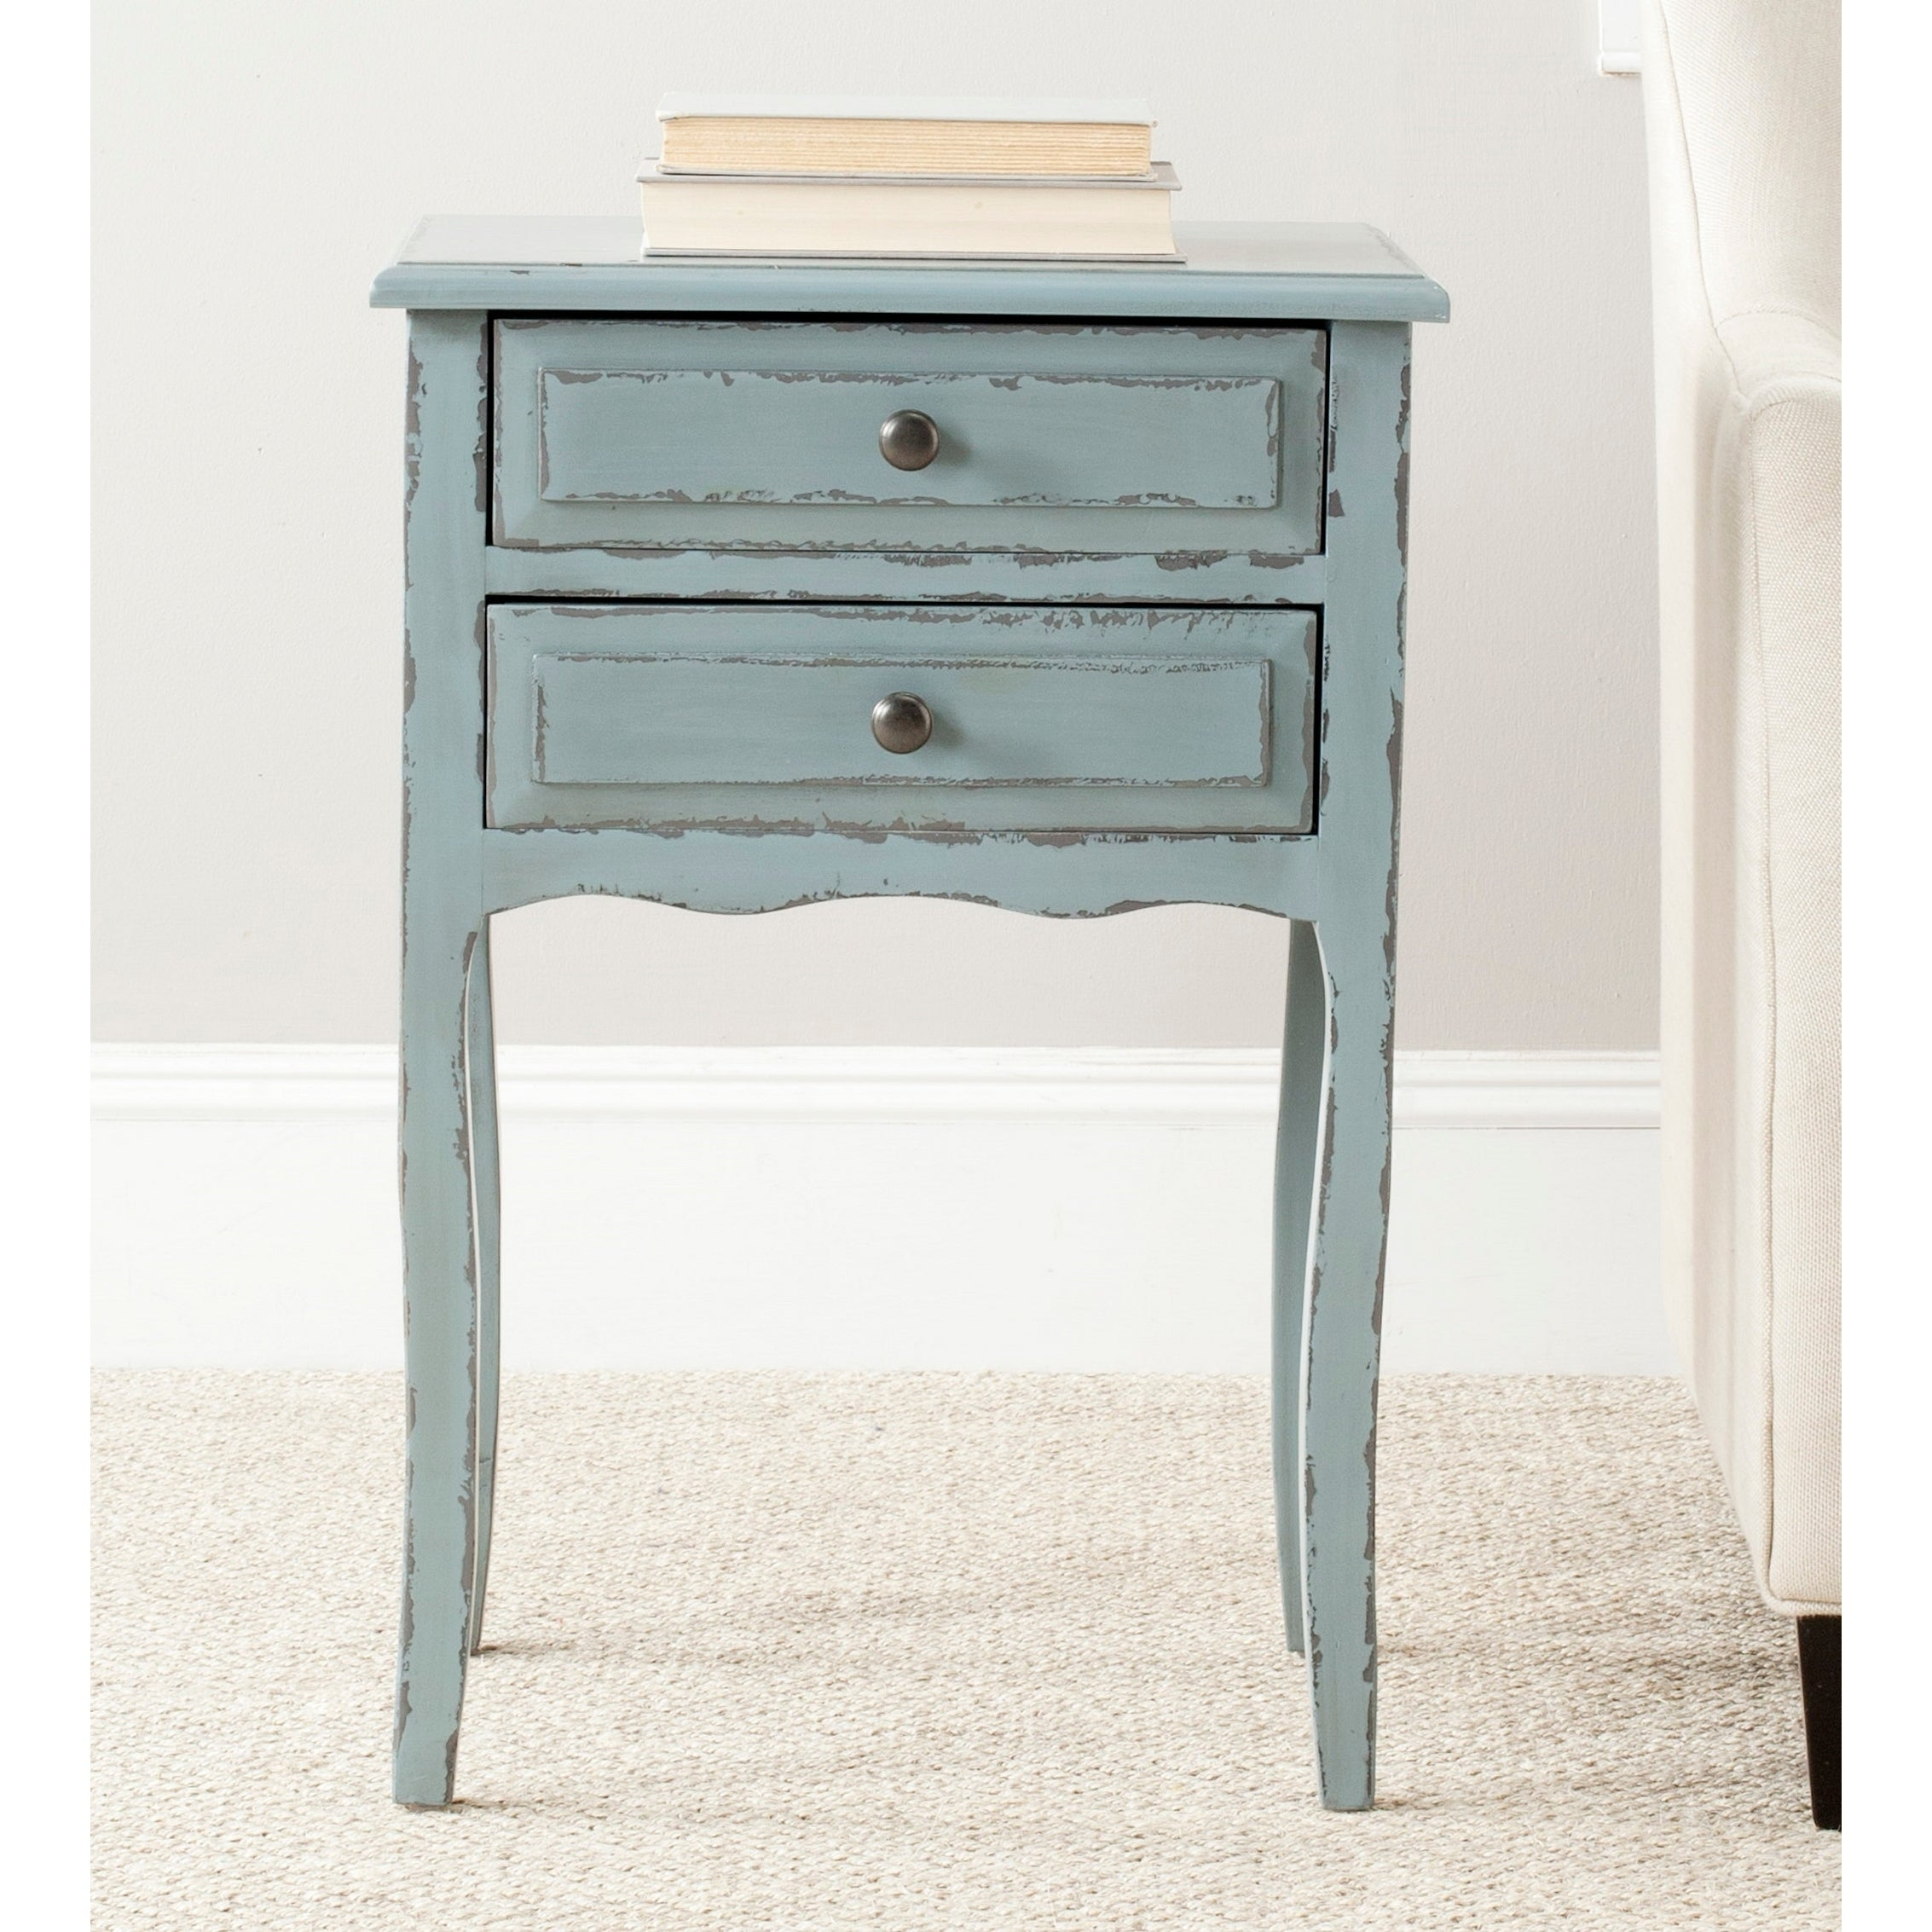 - Shop Safavieh Lori Distressed Pale Blue Accent Table - 18.1